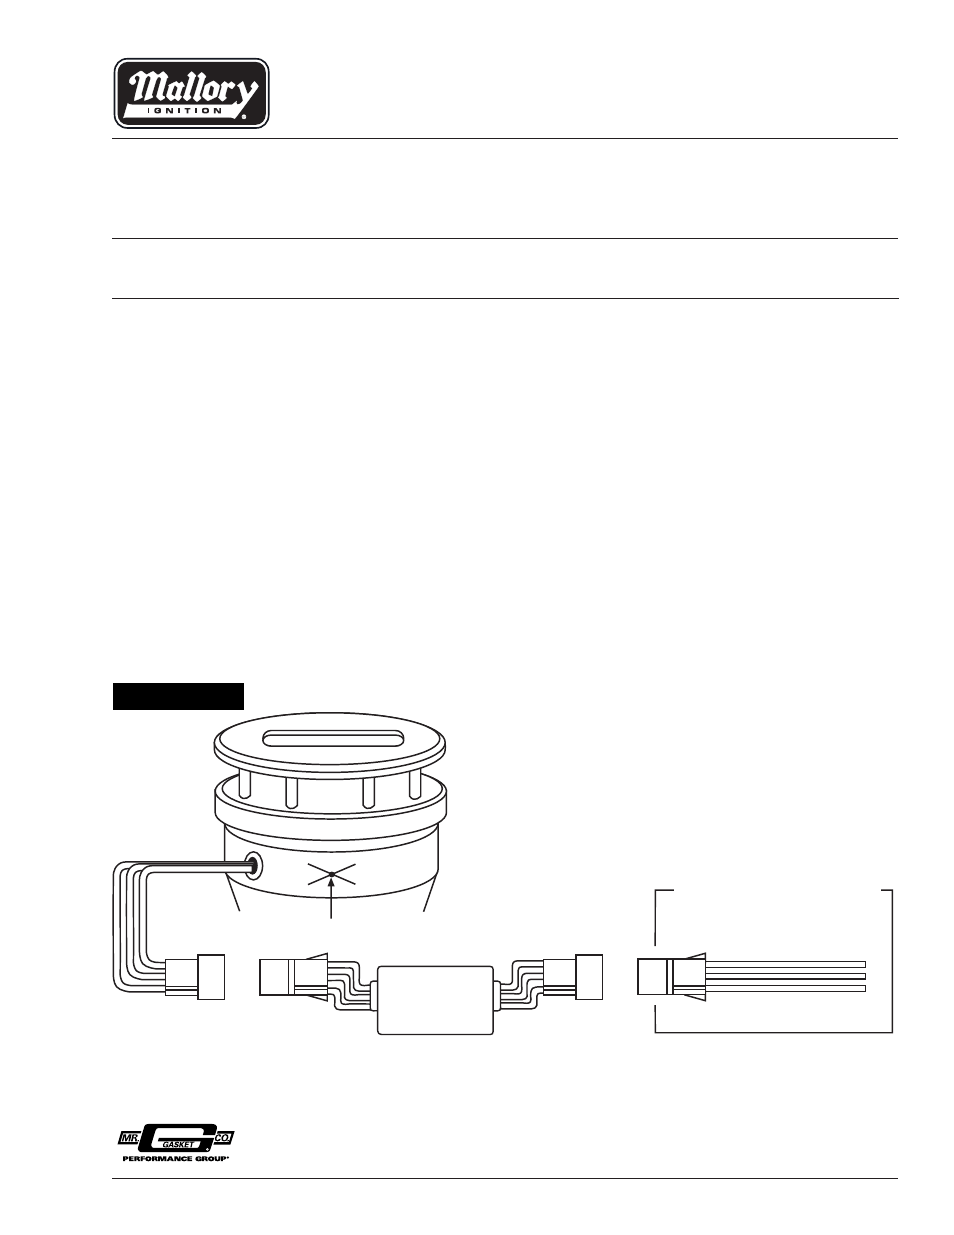 Mallory Ignition Wiring Diagram Pro 9000 Auto Electrical 93 Jeep Wrangler Distributor 1979 Dodge 440 Hyfire 6a